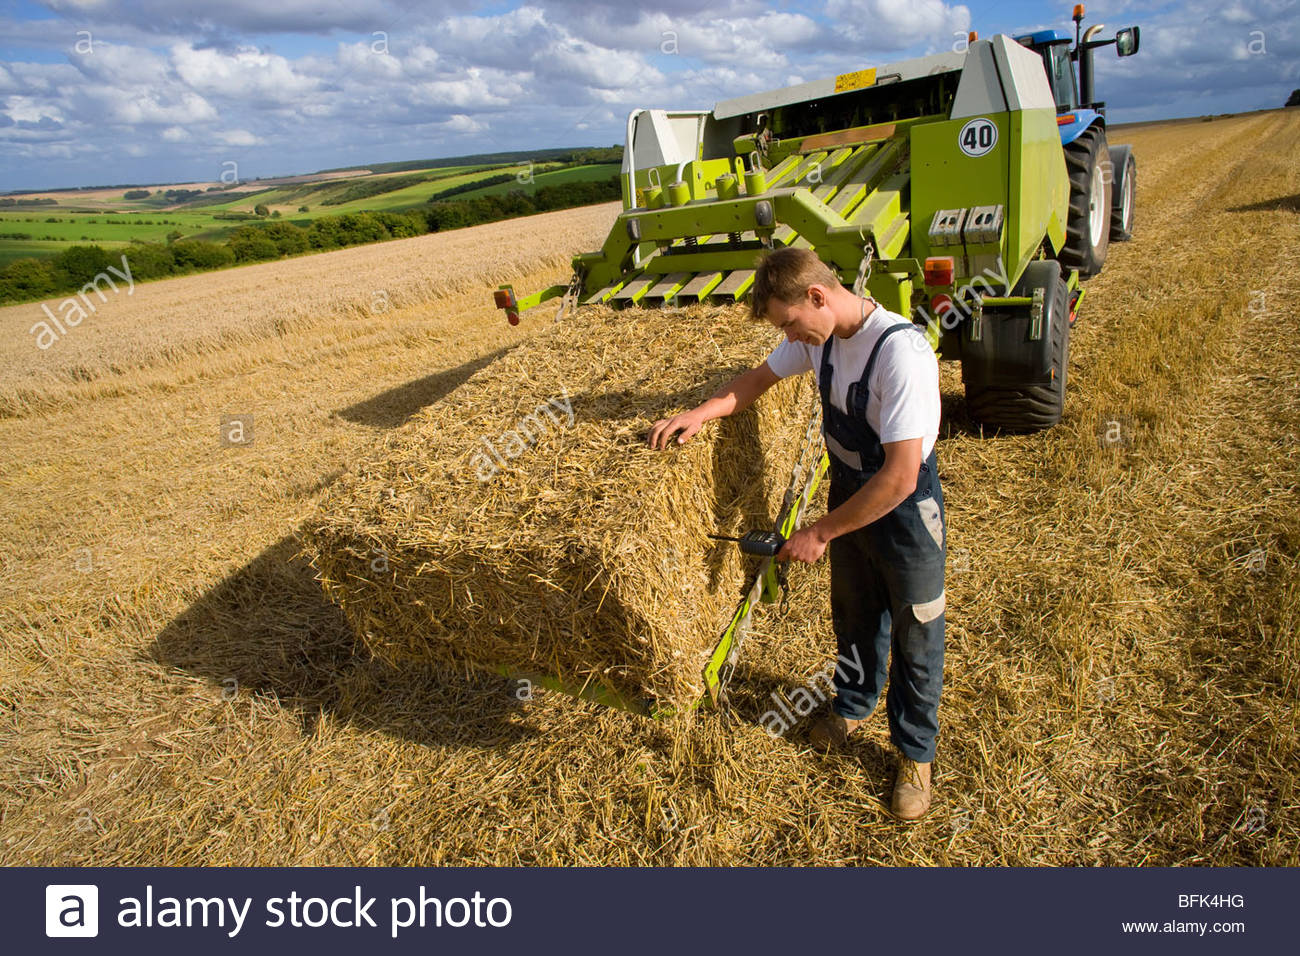 Farmer examining straw bale on baler with moisture reading equipment in rural field - Stock Image